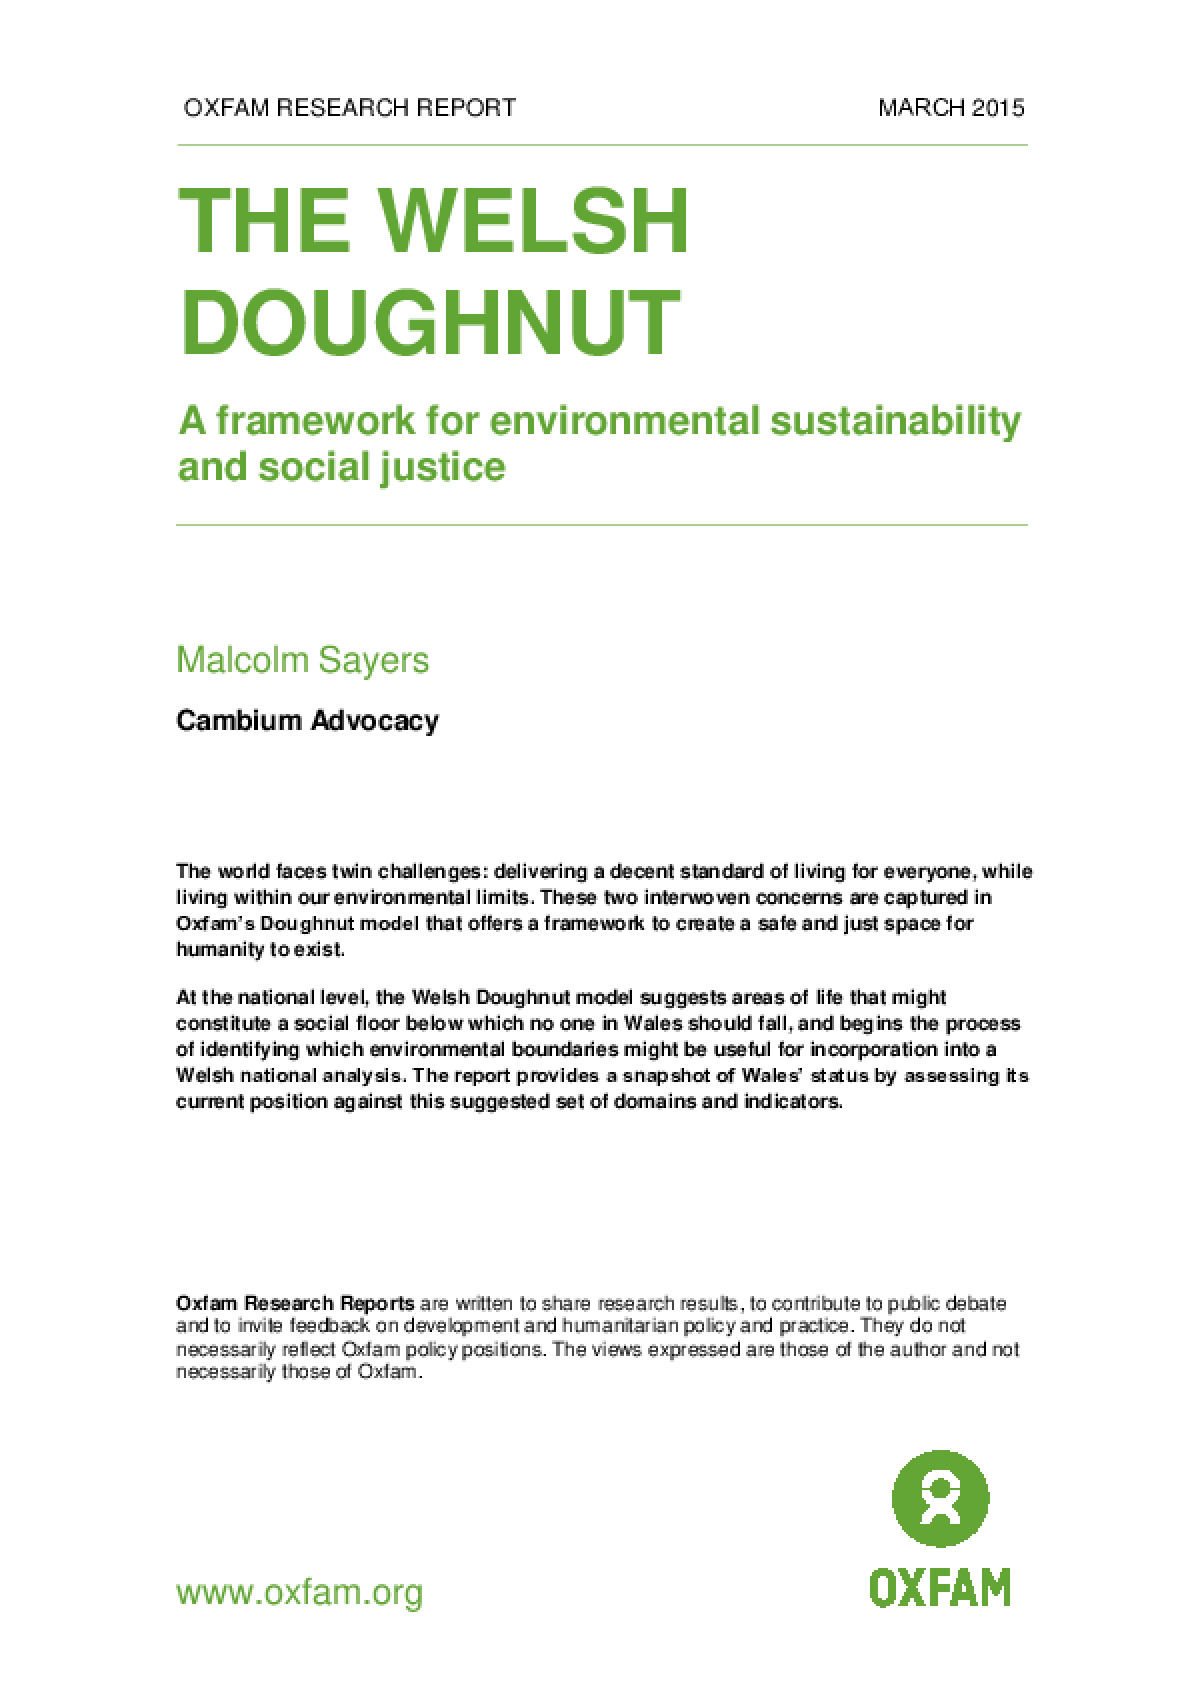 The Welsh Doughnut: A framework for environmental sustainability and social justice